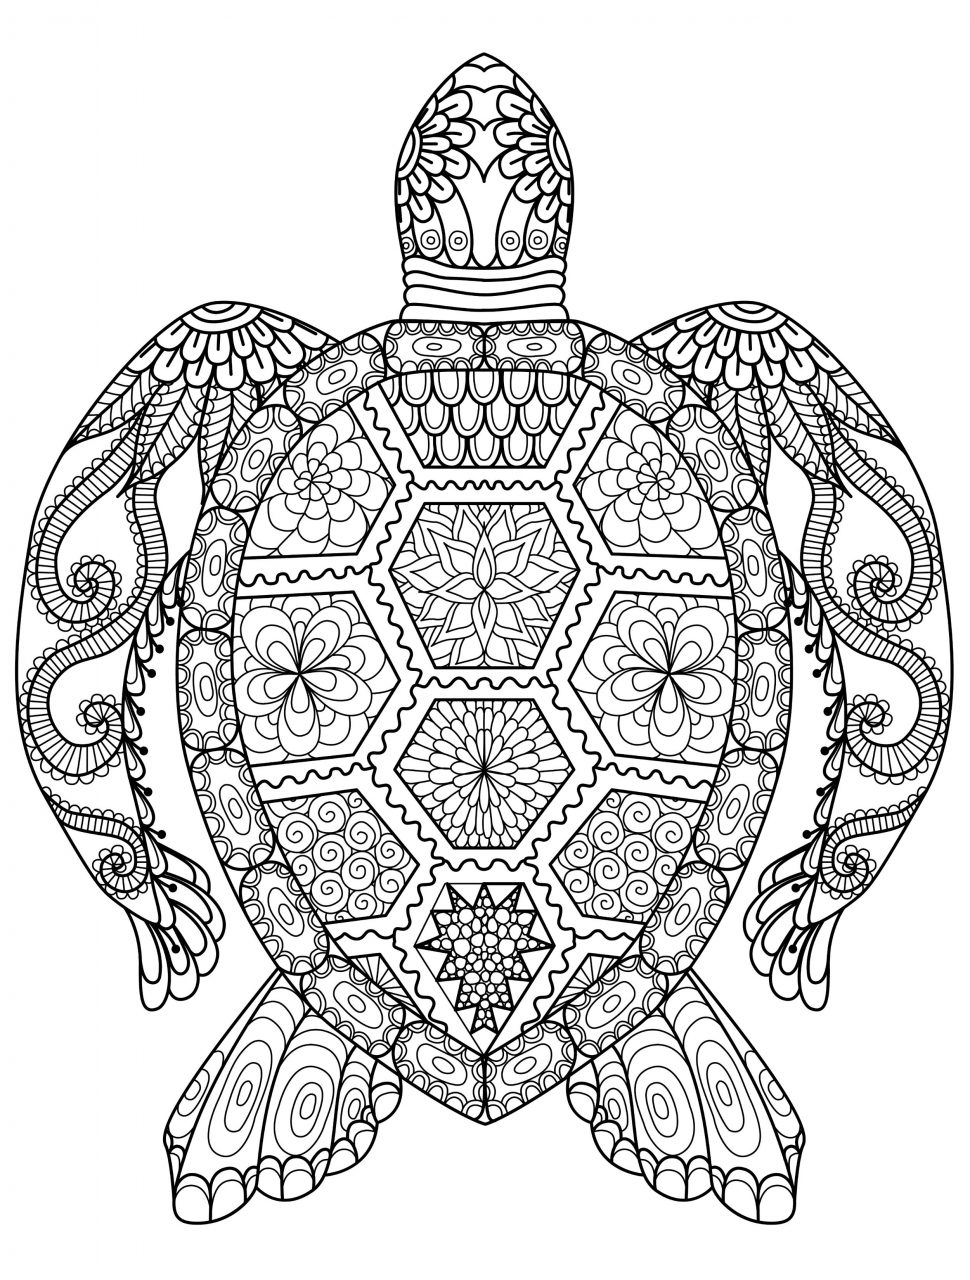 970x1280 Animal Mandala Coloring Pages New Free Printable Home Of Inside